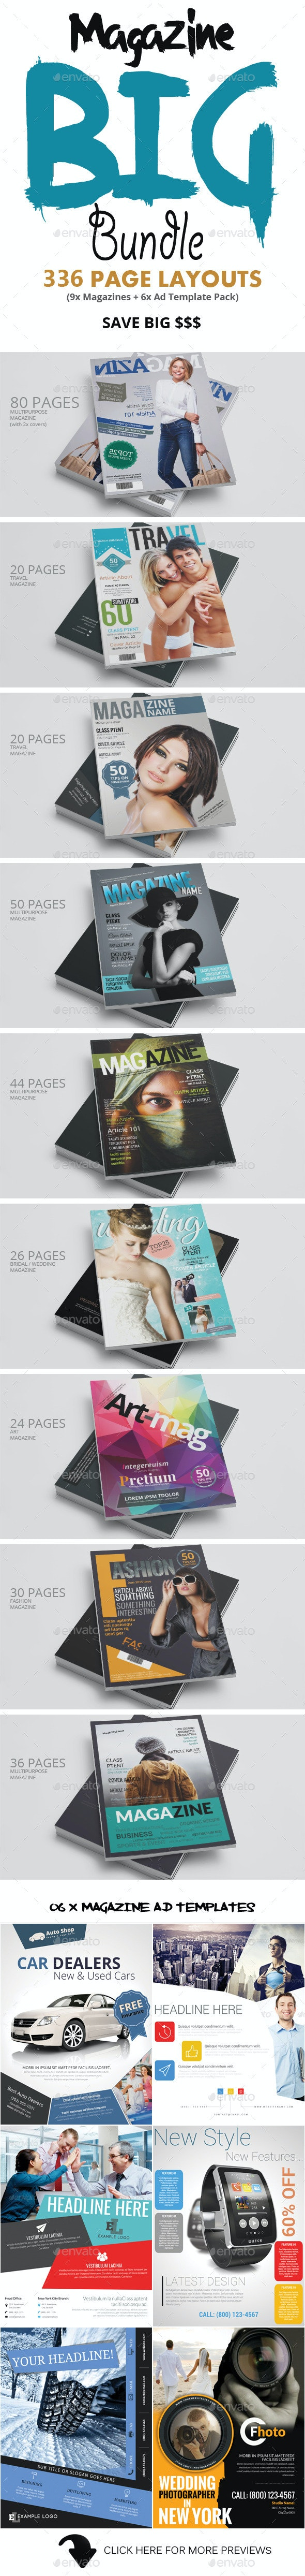 Photoshop Magazine Big Bundle - Magazines Print Templates